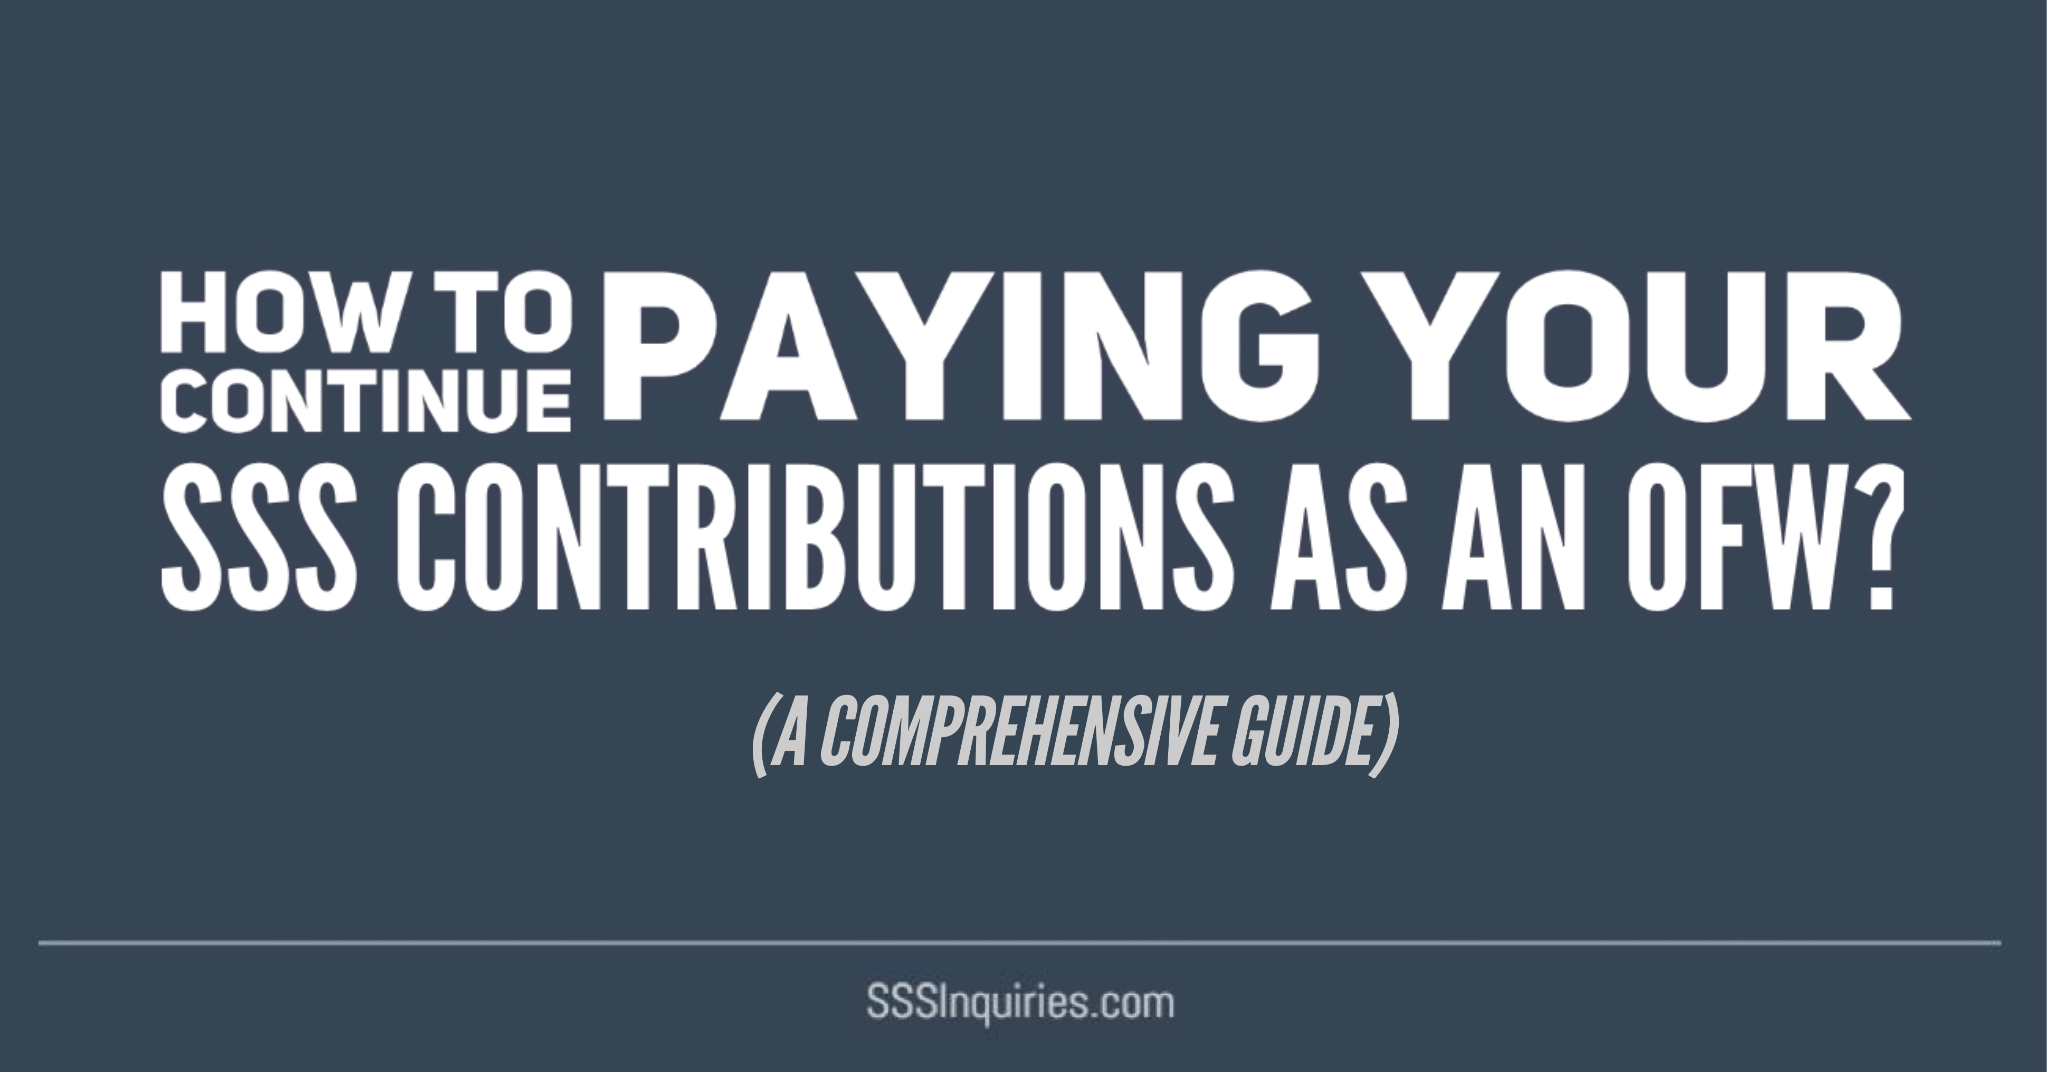 How To Continue Paying Your Sss Contributions As An Ofw Sss Inquiries